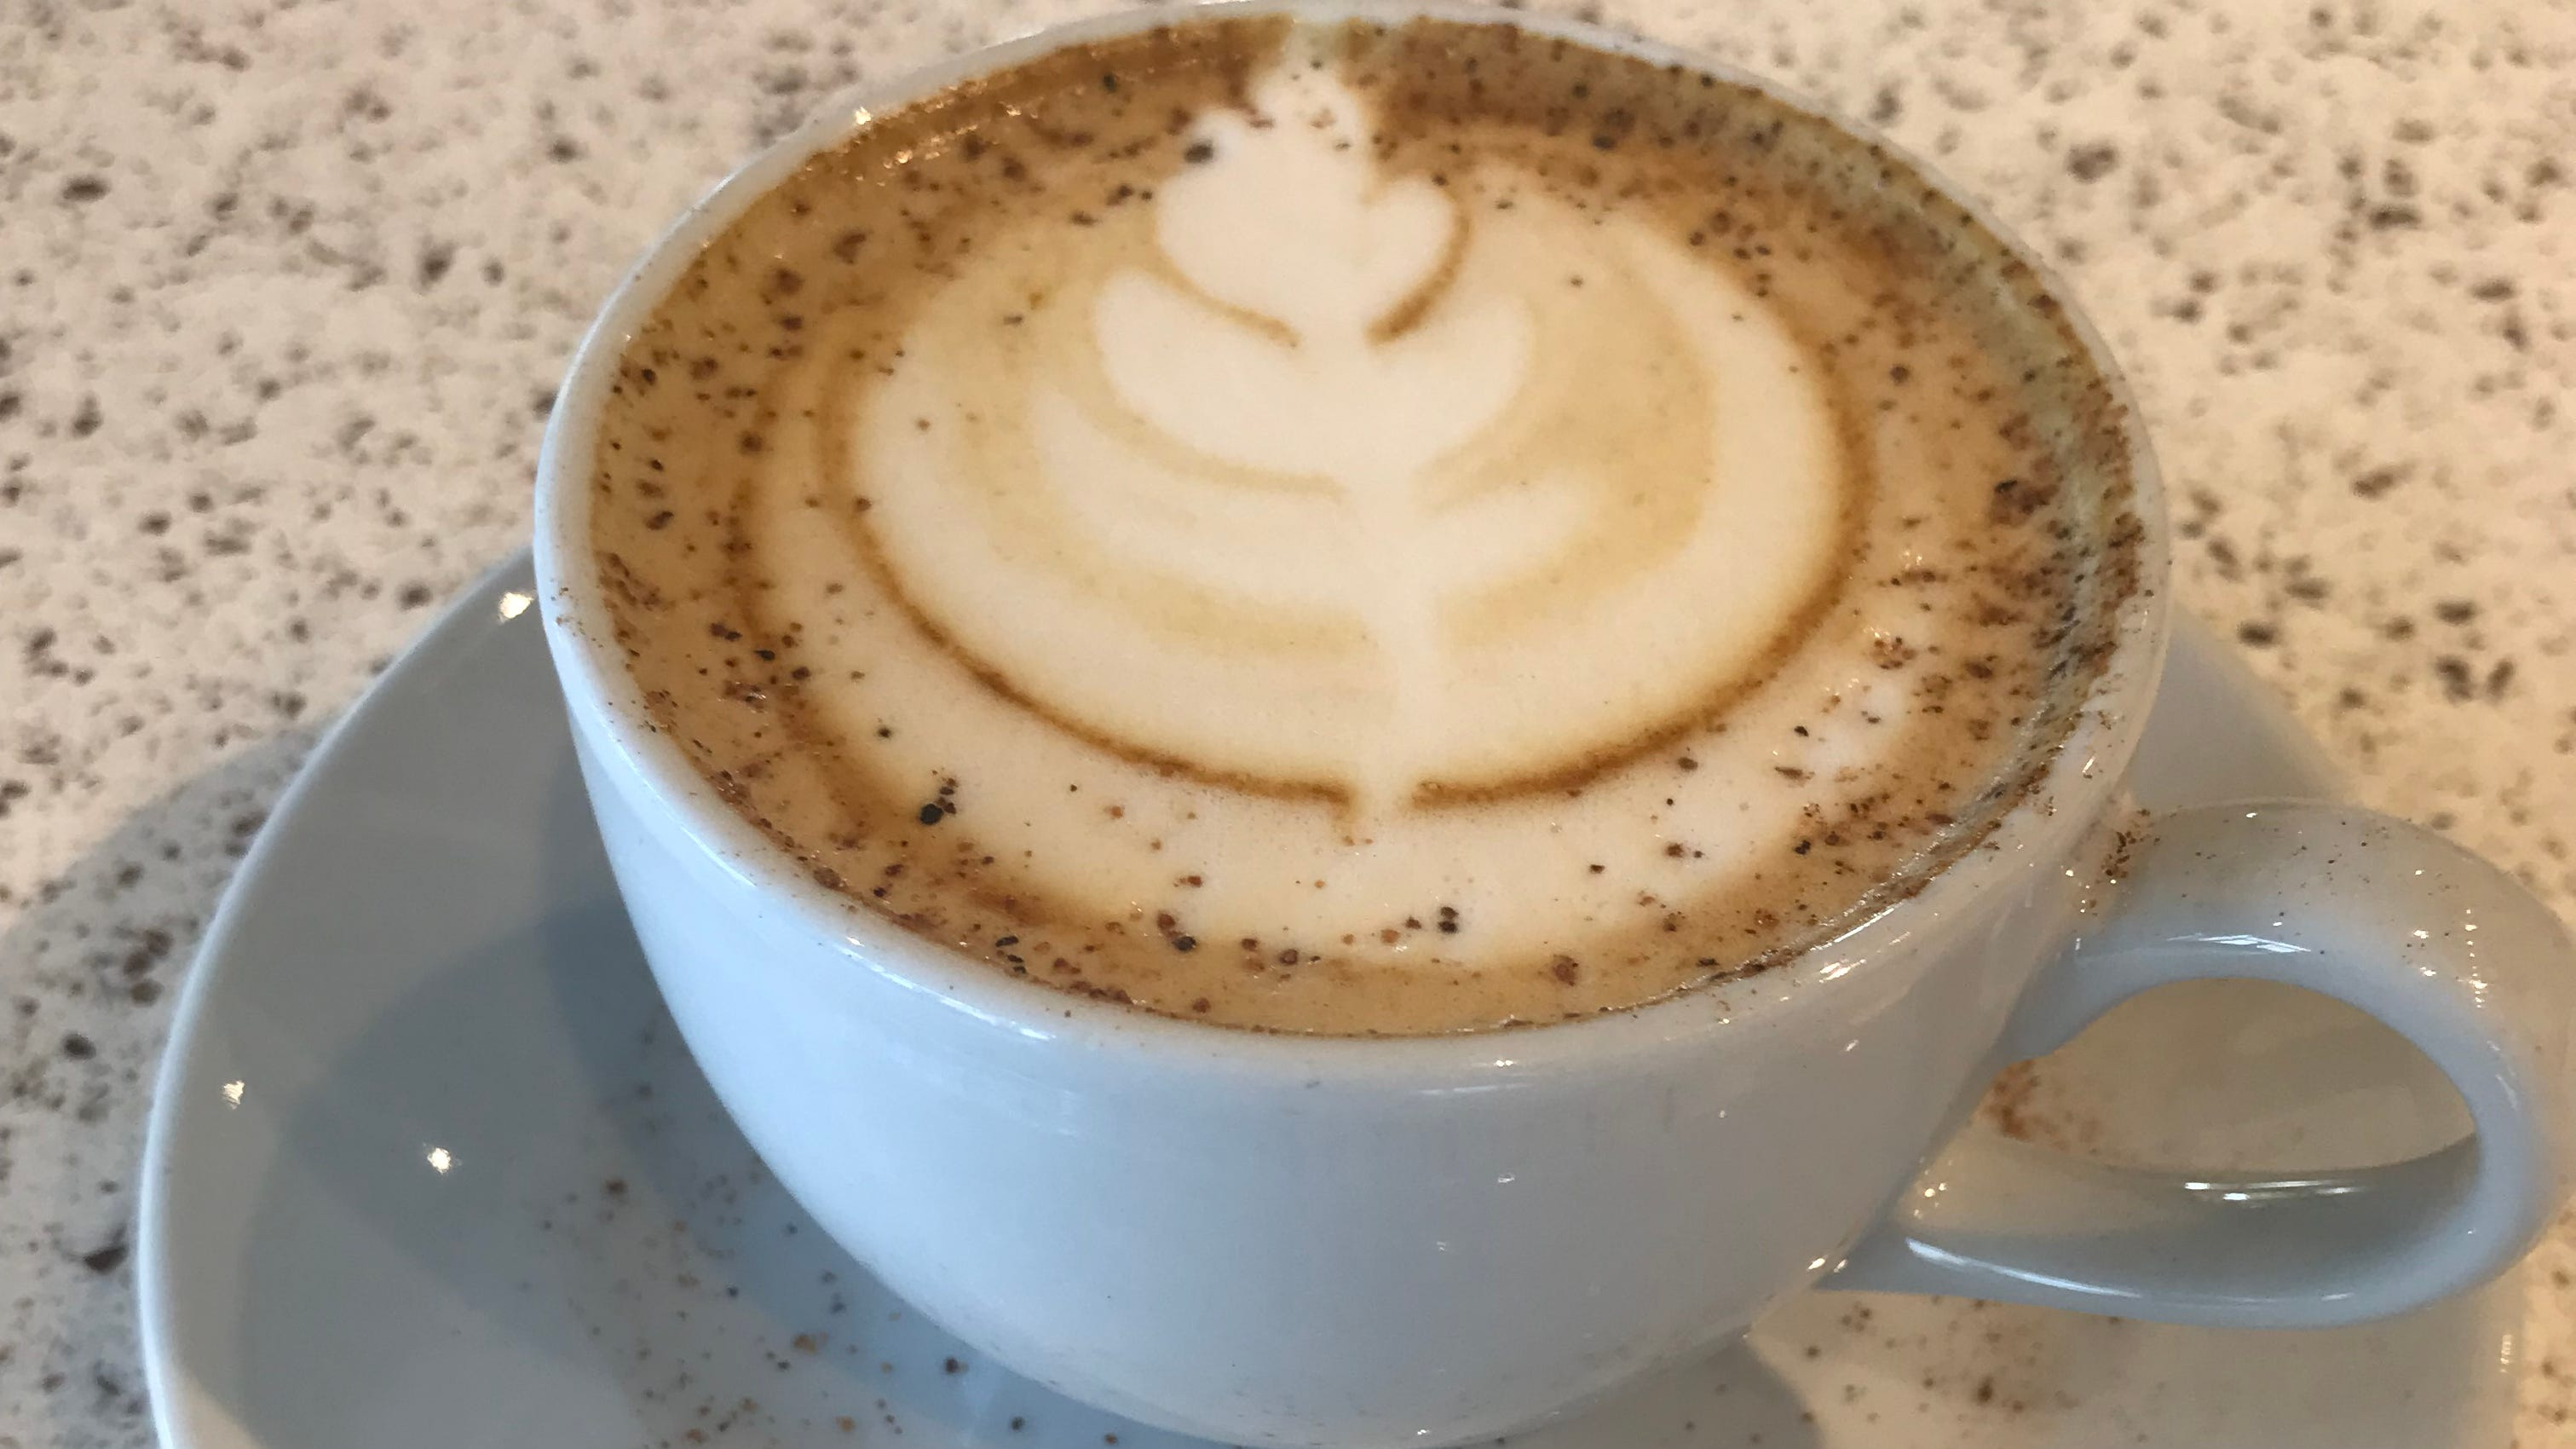 Just Love Coffee makes a traditional, espresso-heavy pumpkin spice latte that the haters might even like. It's mild and you can really taste the espresso.